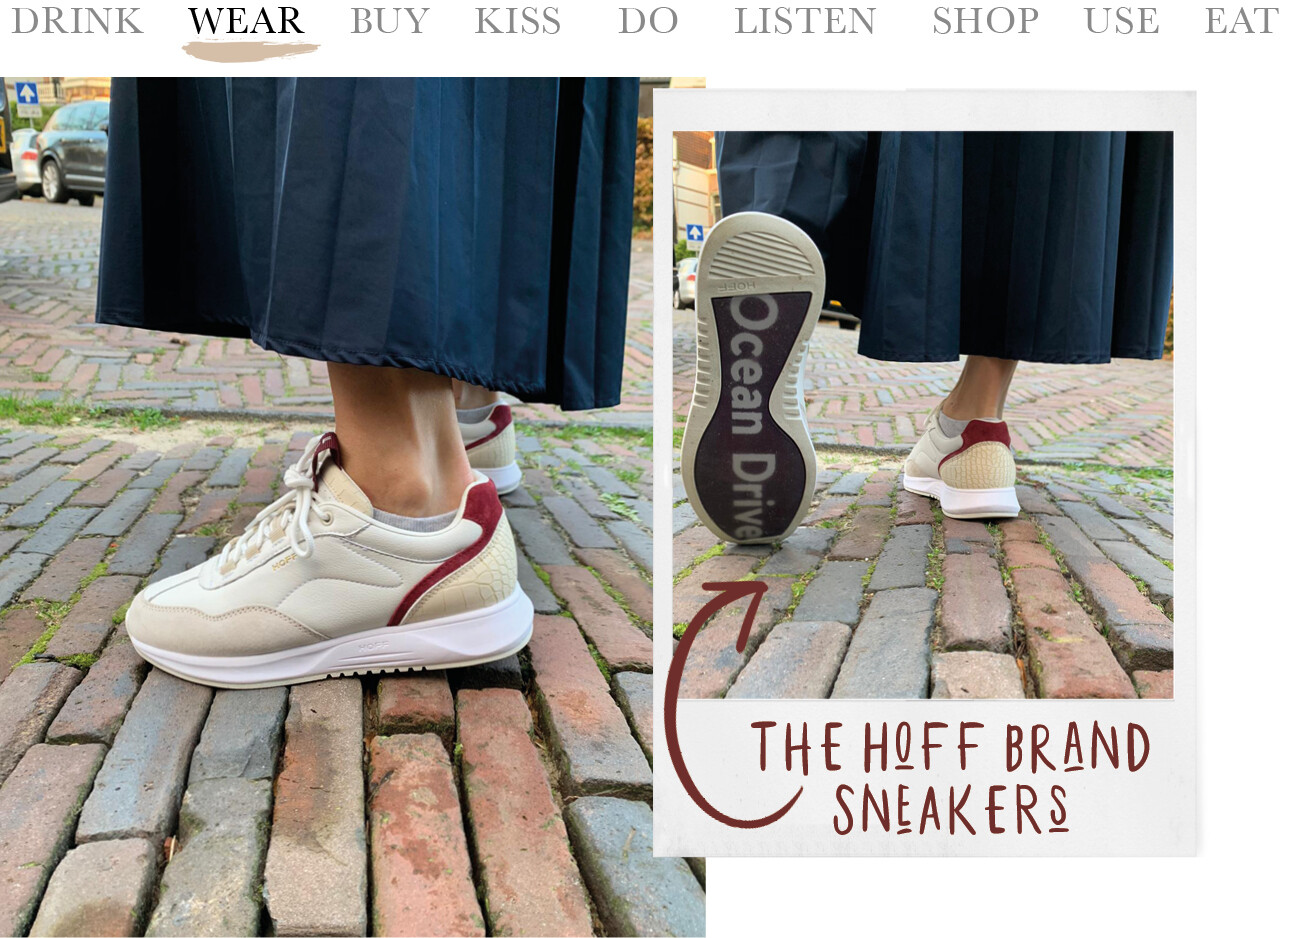 https://amayzine.com/nl/2020/today-we-wear-the-hoff-brand-sneakers/